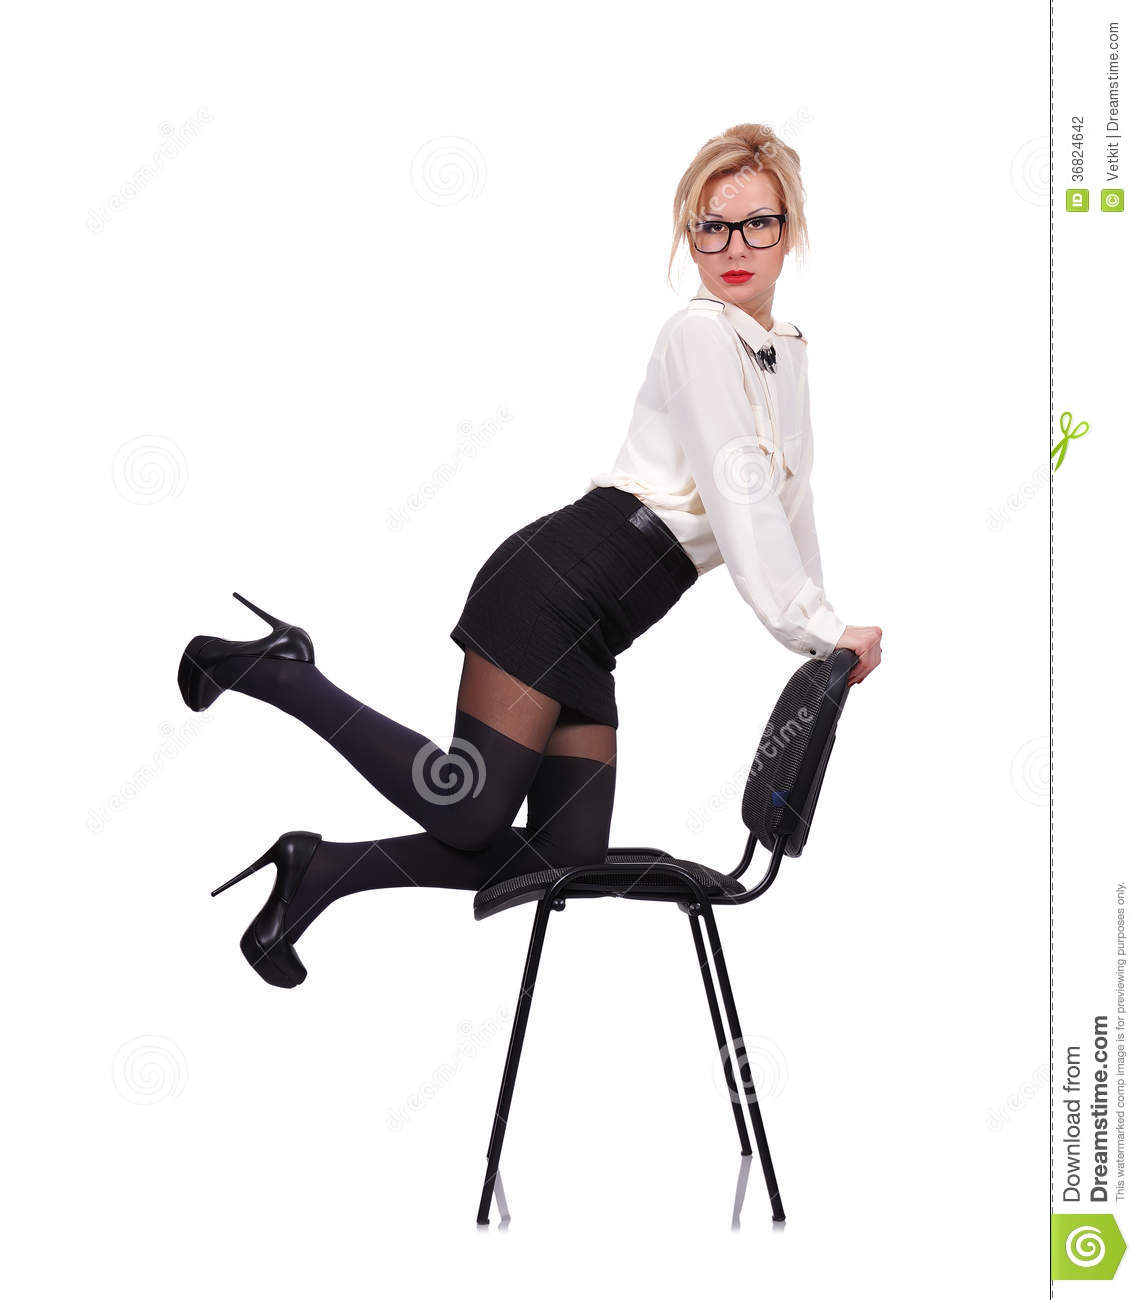 Girl Chair Stock graphy Image